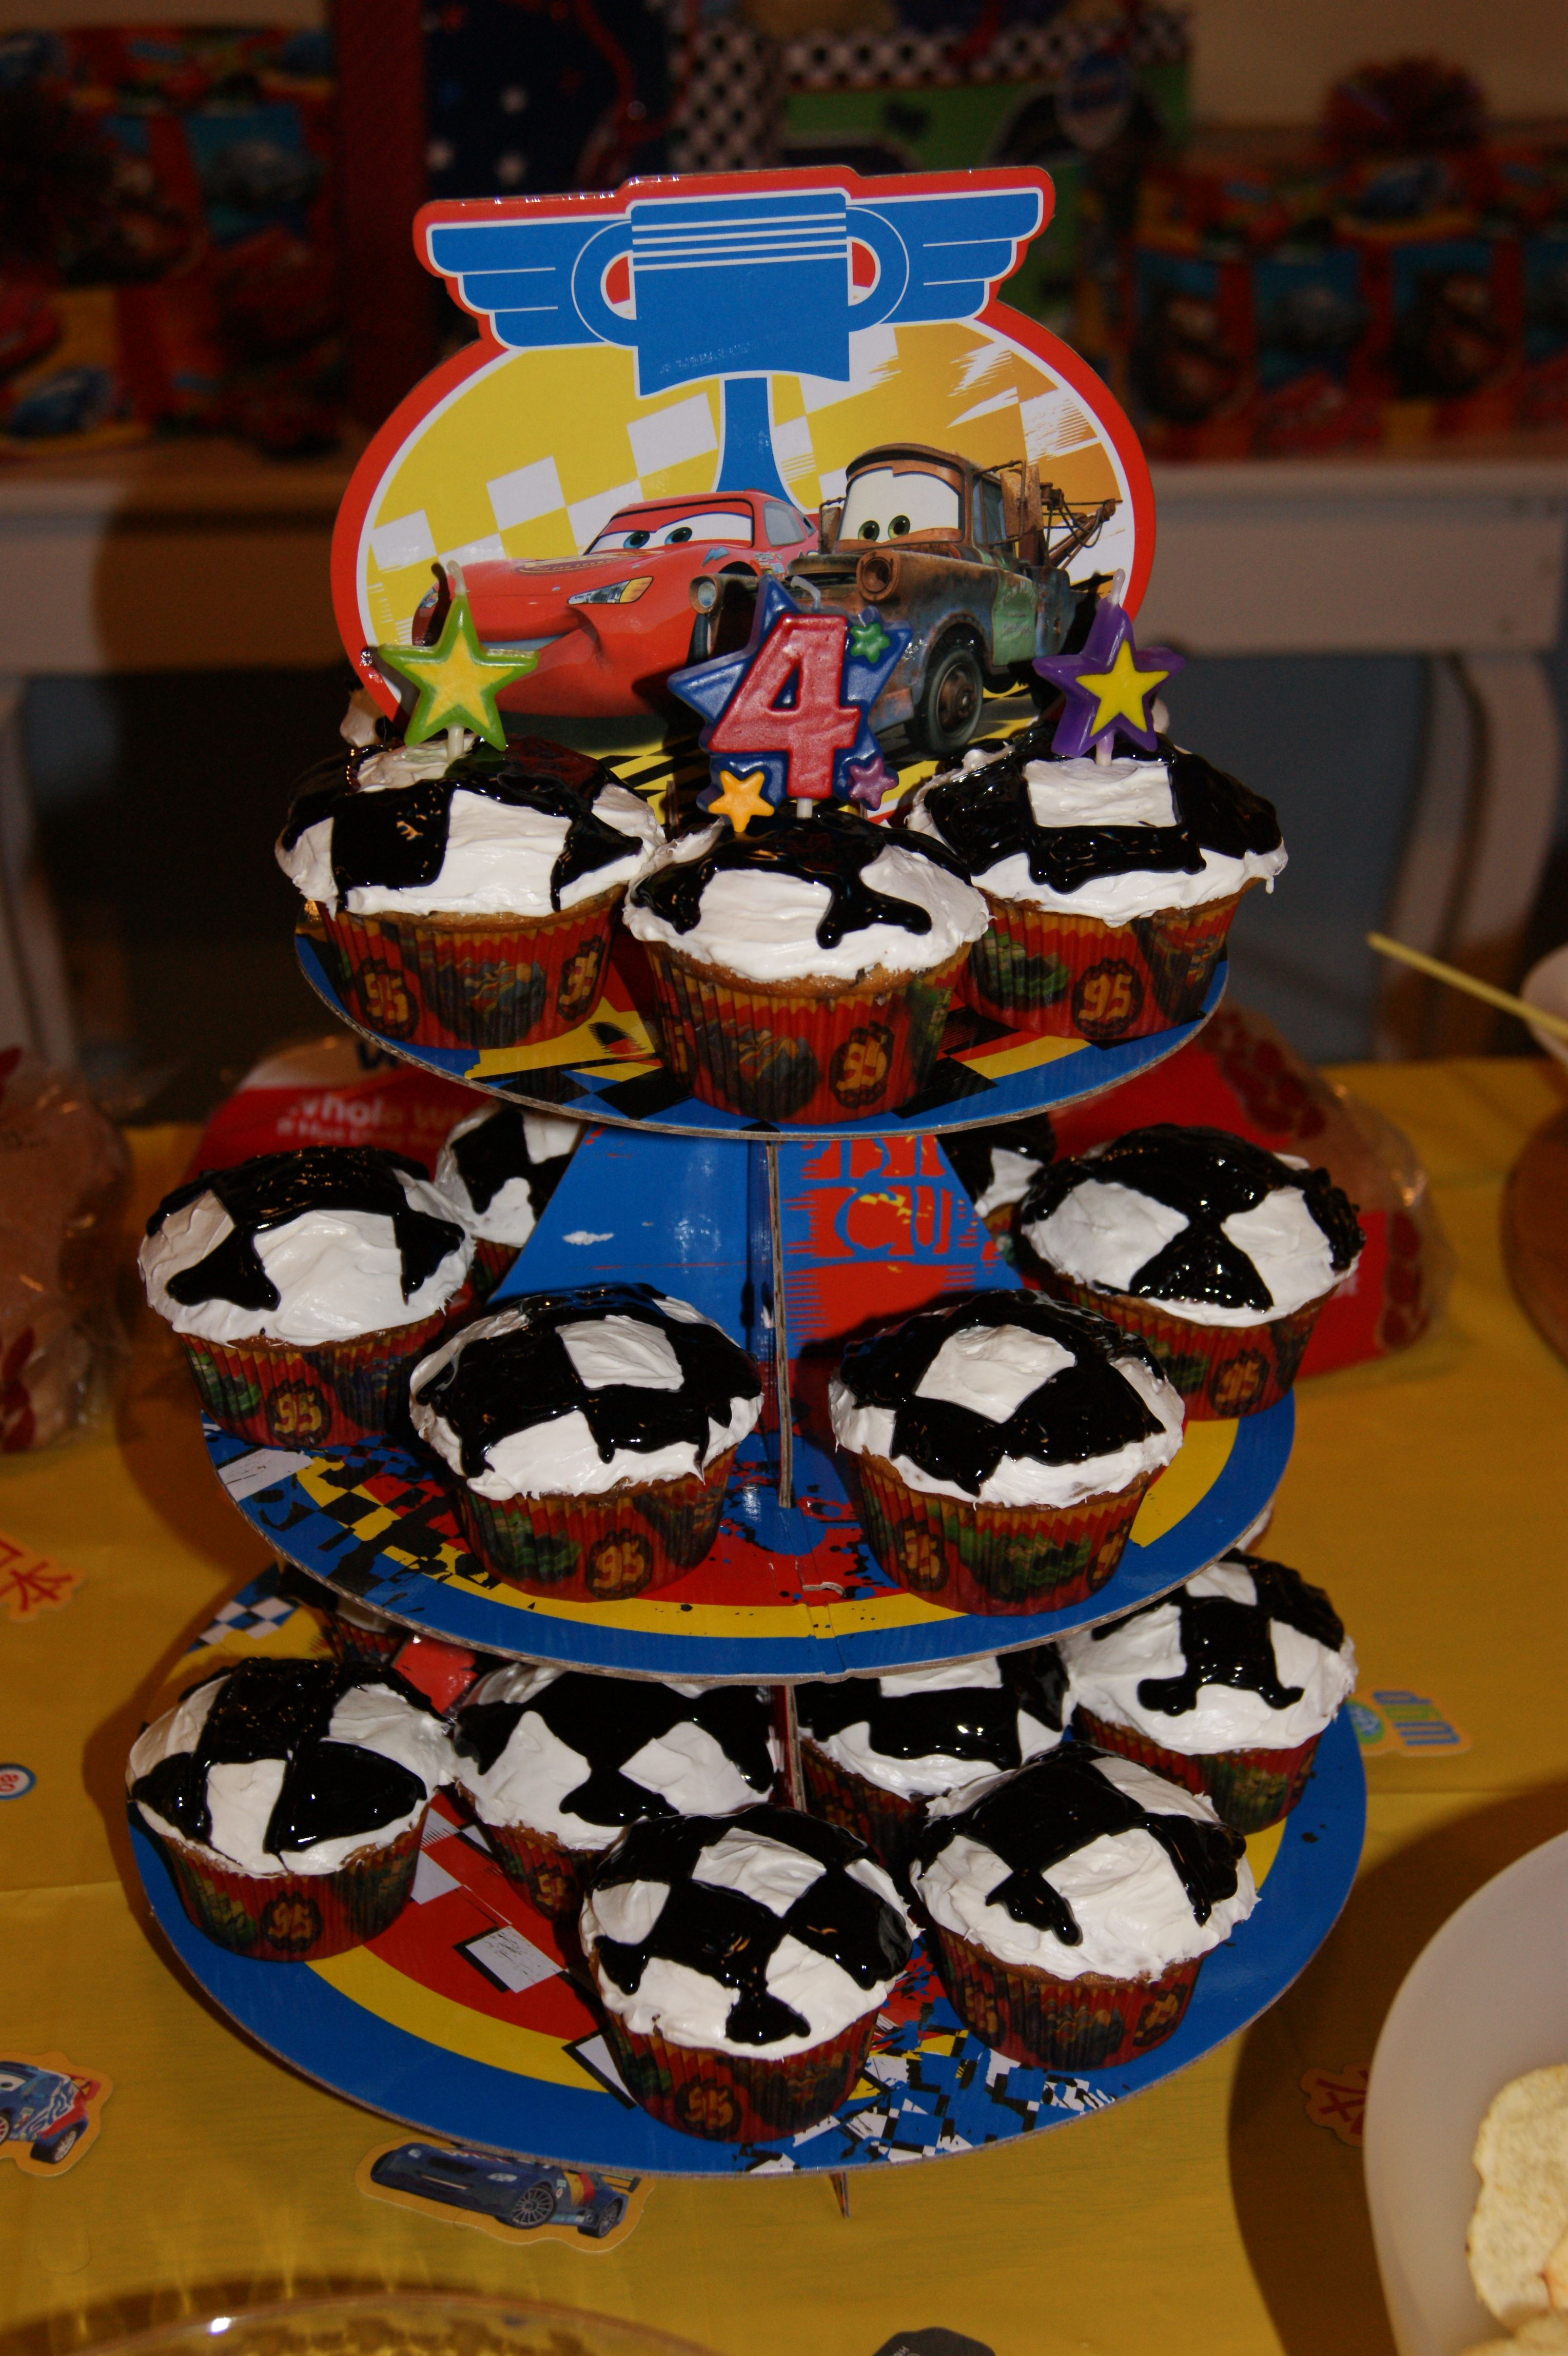 Amazing checkered flag cupcakes my sister made for my son's Cars birthday party!